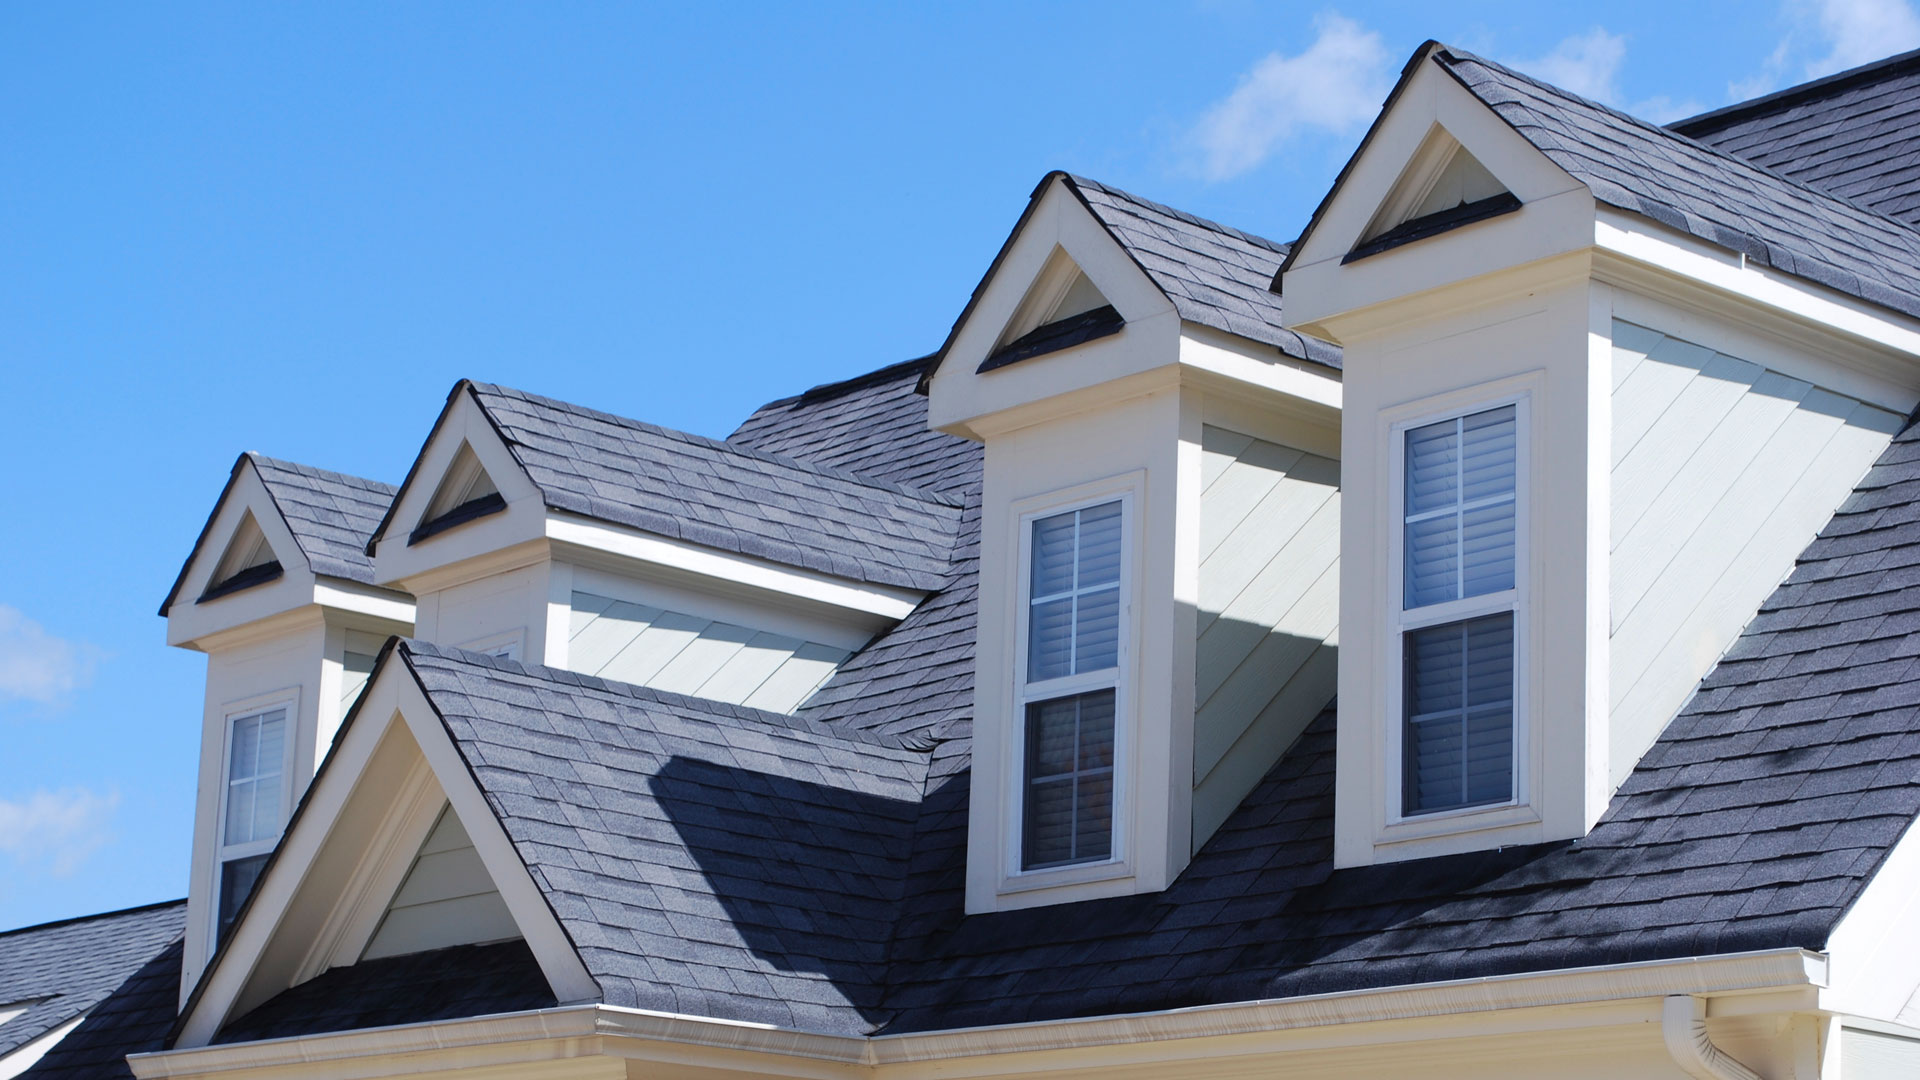 Trace The Issues in Your Roofing And Call a Roofing Contractor Today